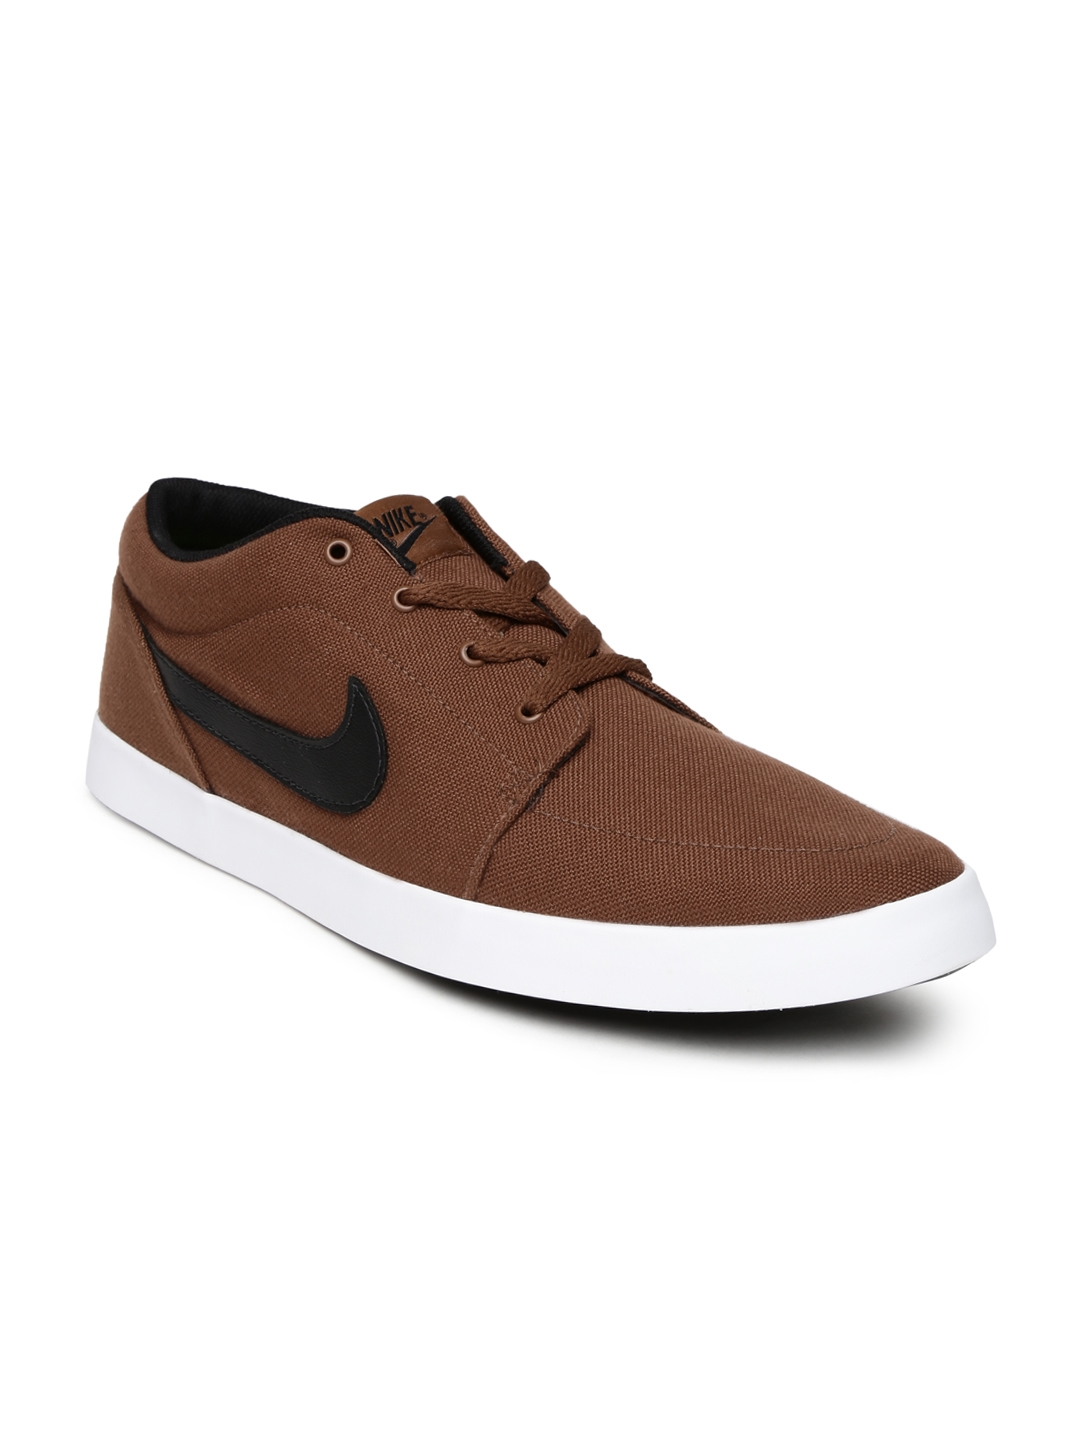 07c5da80c1de Buy Nike Men Brown Voleio Casual Shoes - Casual Shoes for Men ...